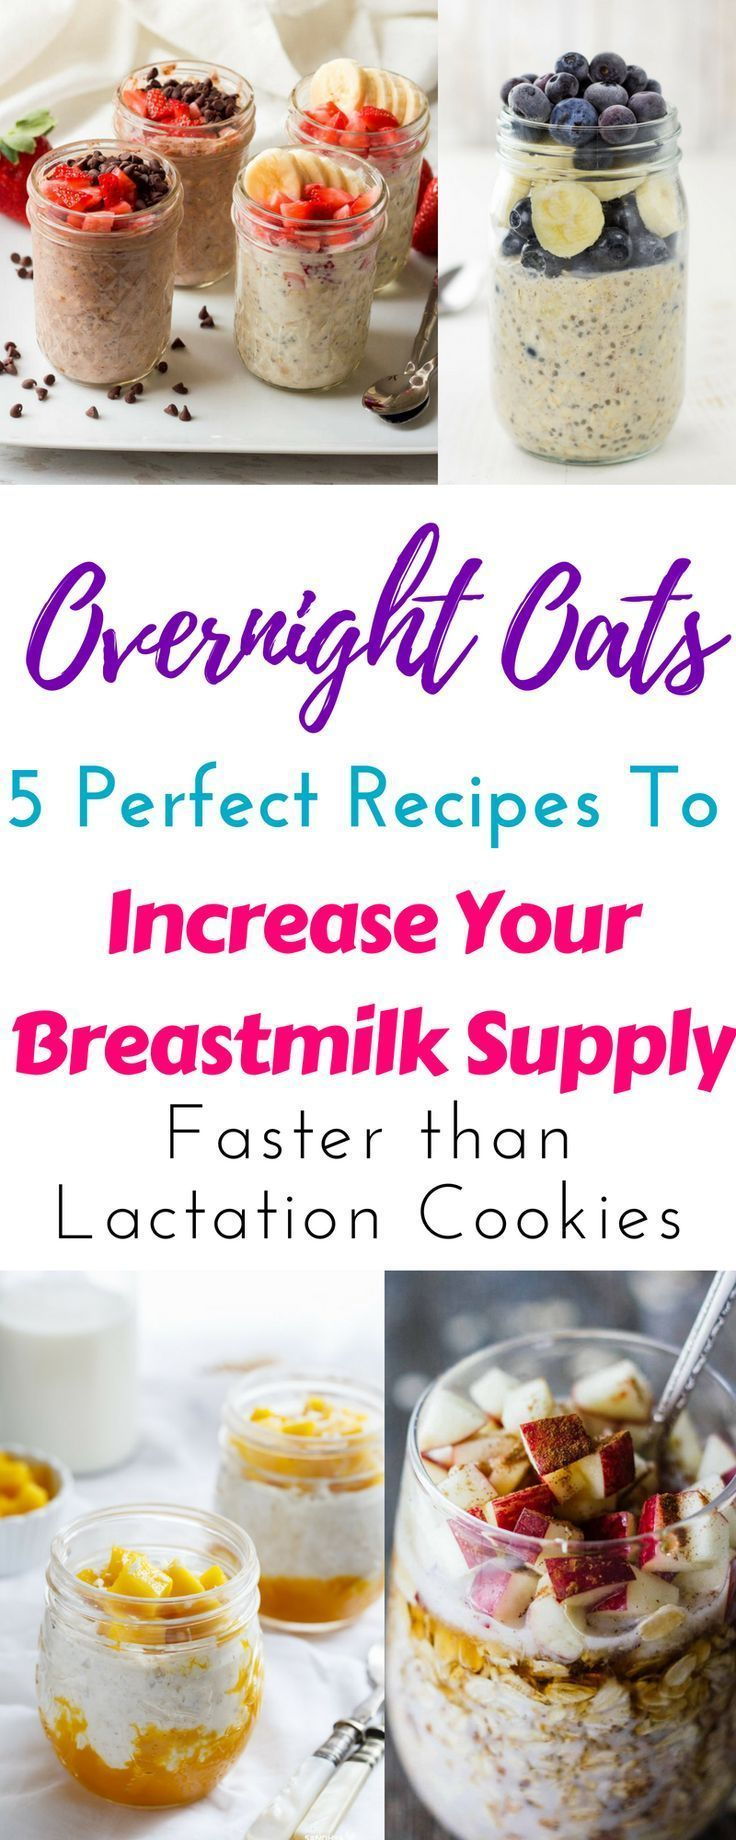 Overnight Oats For Lactation To Increase Milk Supply -3582